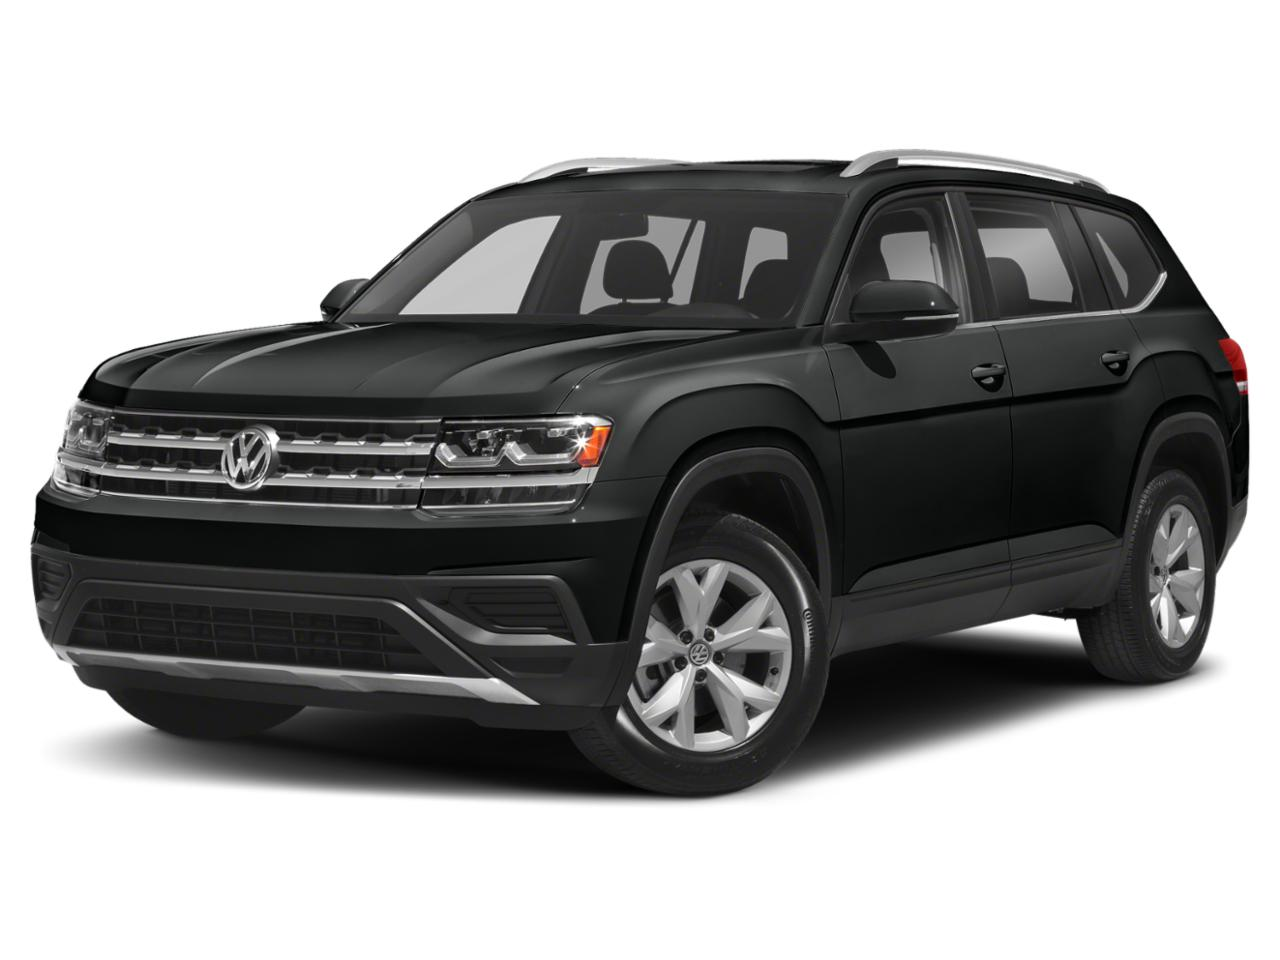 2018 Volkswagen Atlas Vehicle Photo in Midland, TX 79703